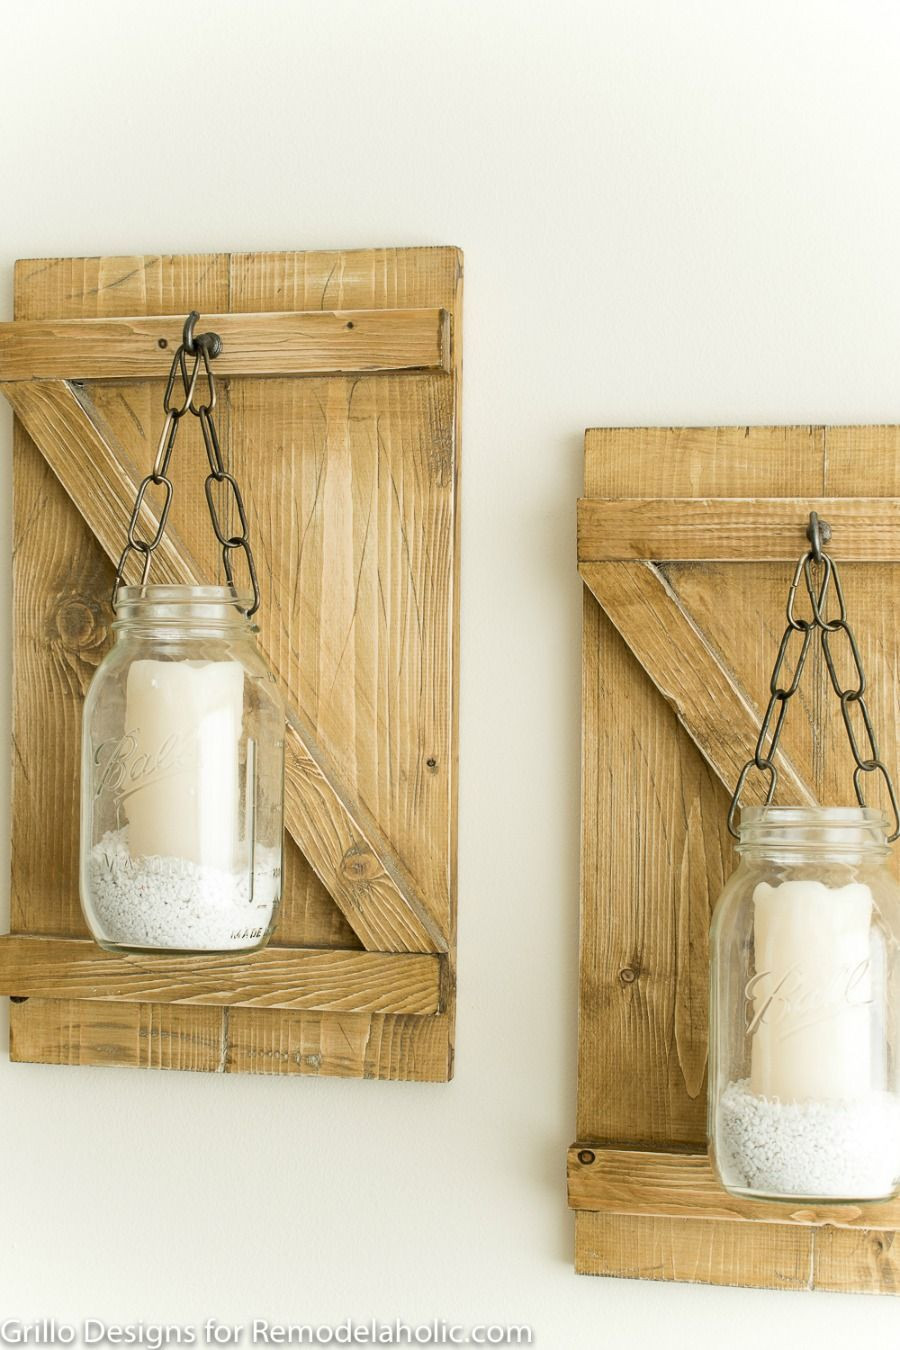 Mason Jar Vase Of 18 Elegant Mason Jar Hanging Wall Vase Bogekompresorturkiye Com within Weathered Wood Mason Jar Candle Hangers